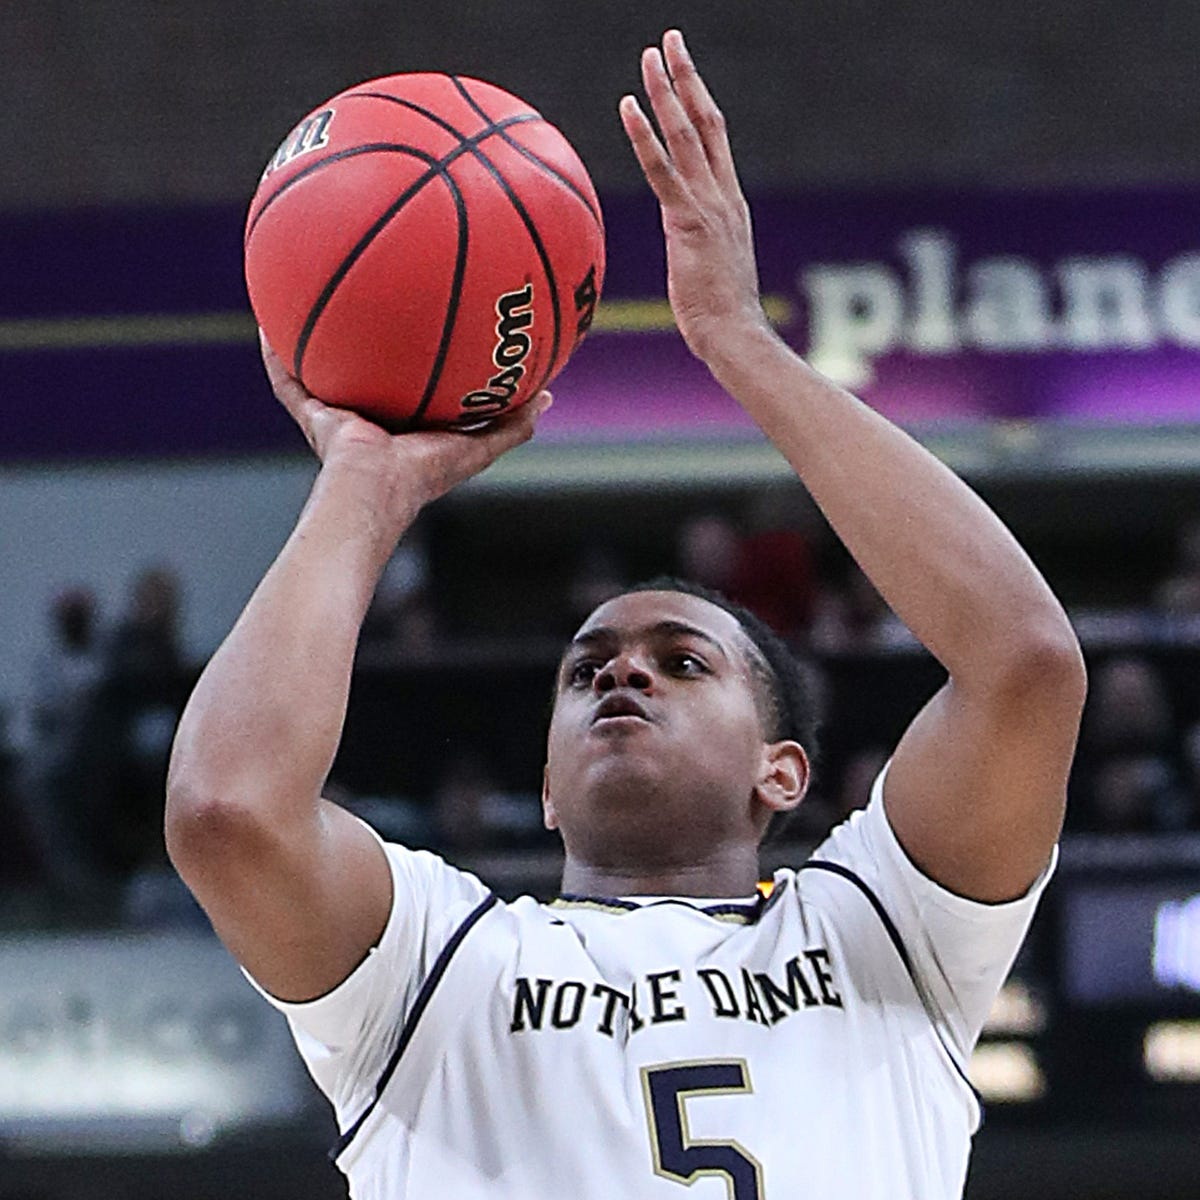 Notre Dame guard D.J. Harvey transferring to Vanderbilt basketball; Jerry Stackhouse reshaping roster